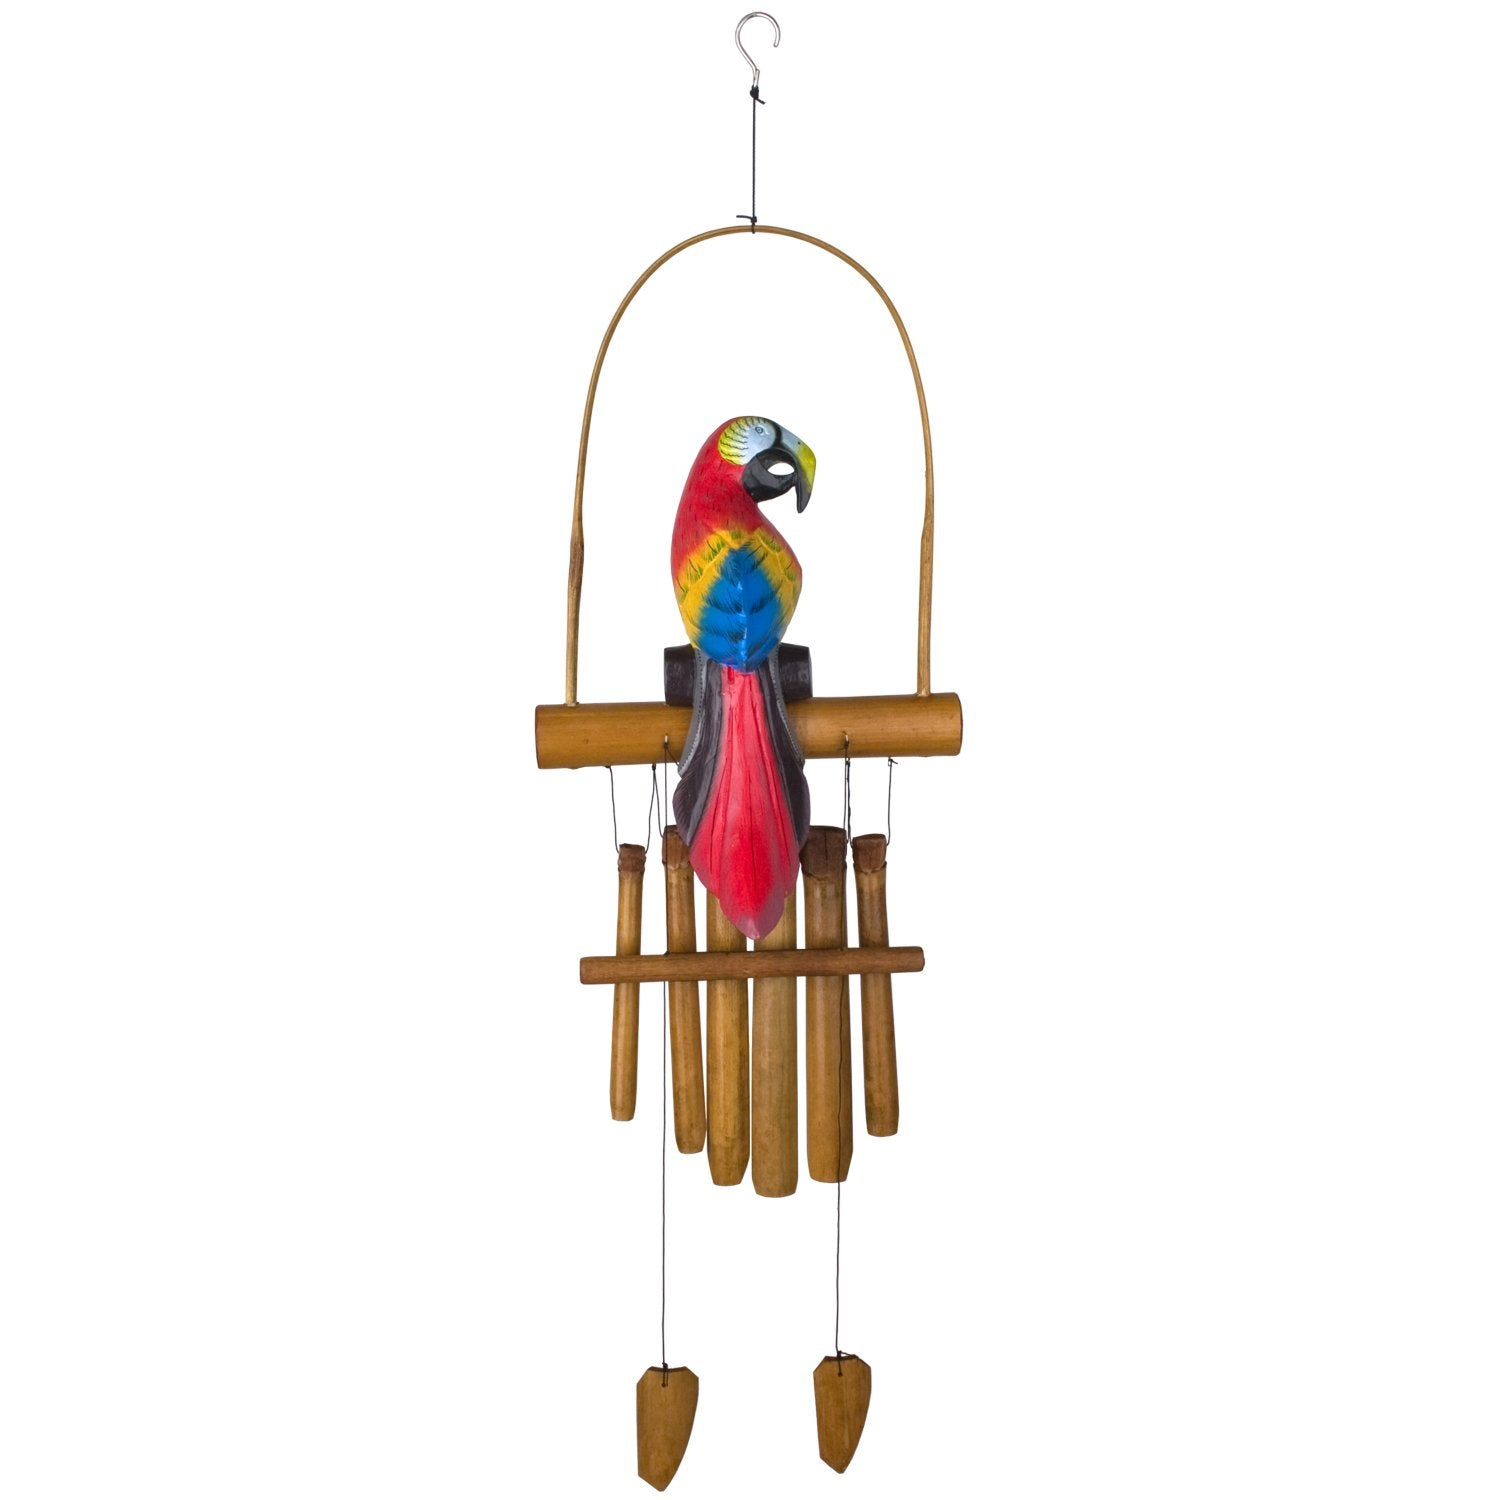 Animal Bamboo Chime - Parrot full product image